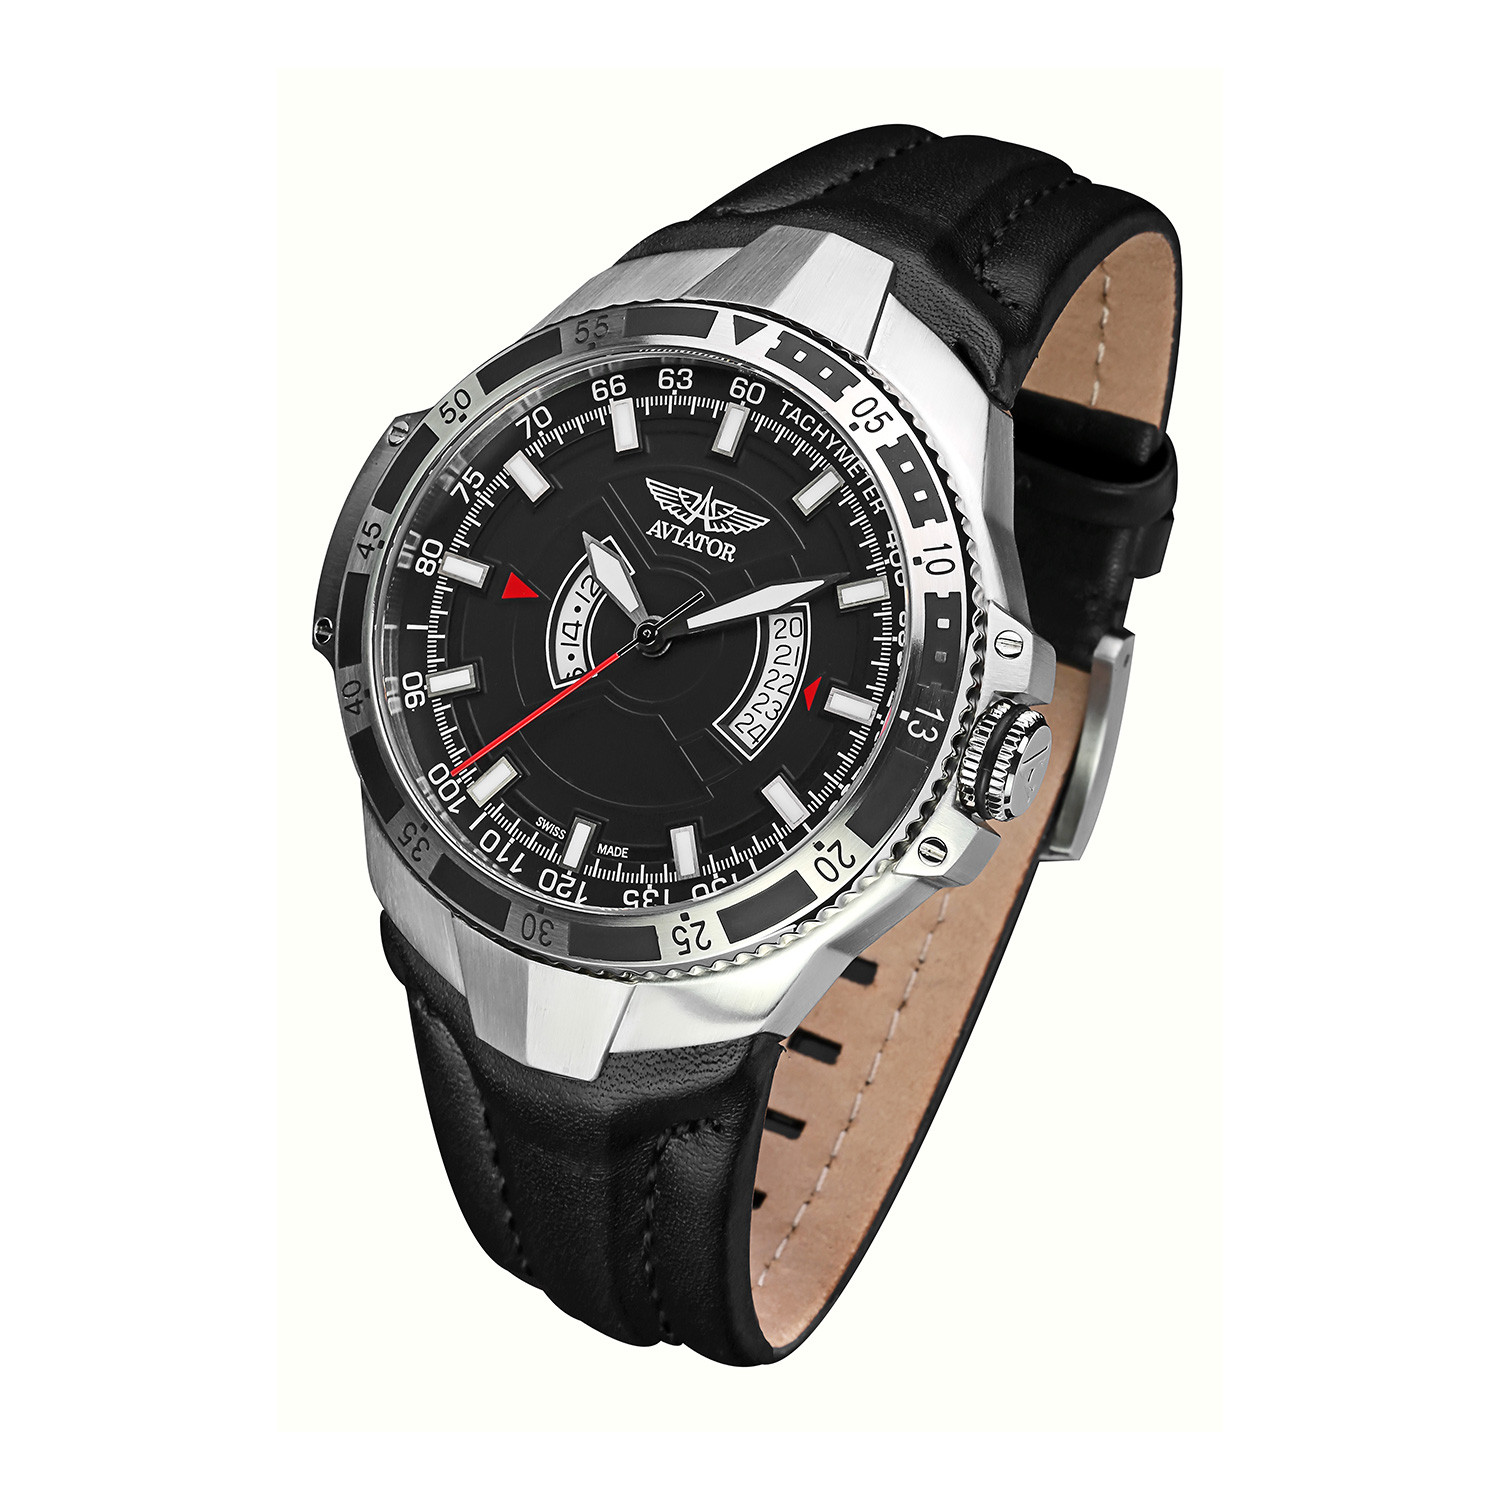 on hi russia company watches cool chrono best aviator images chronowatch aviators companies tech at wrist pinterest watch